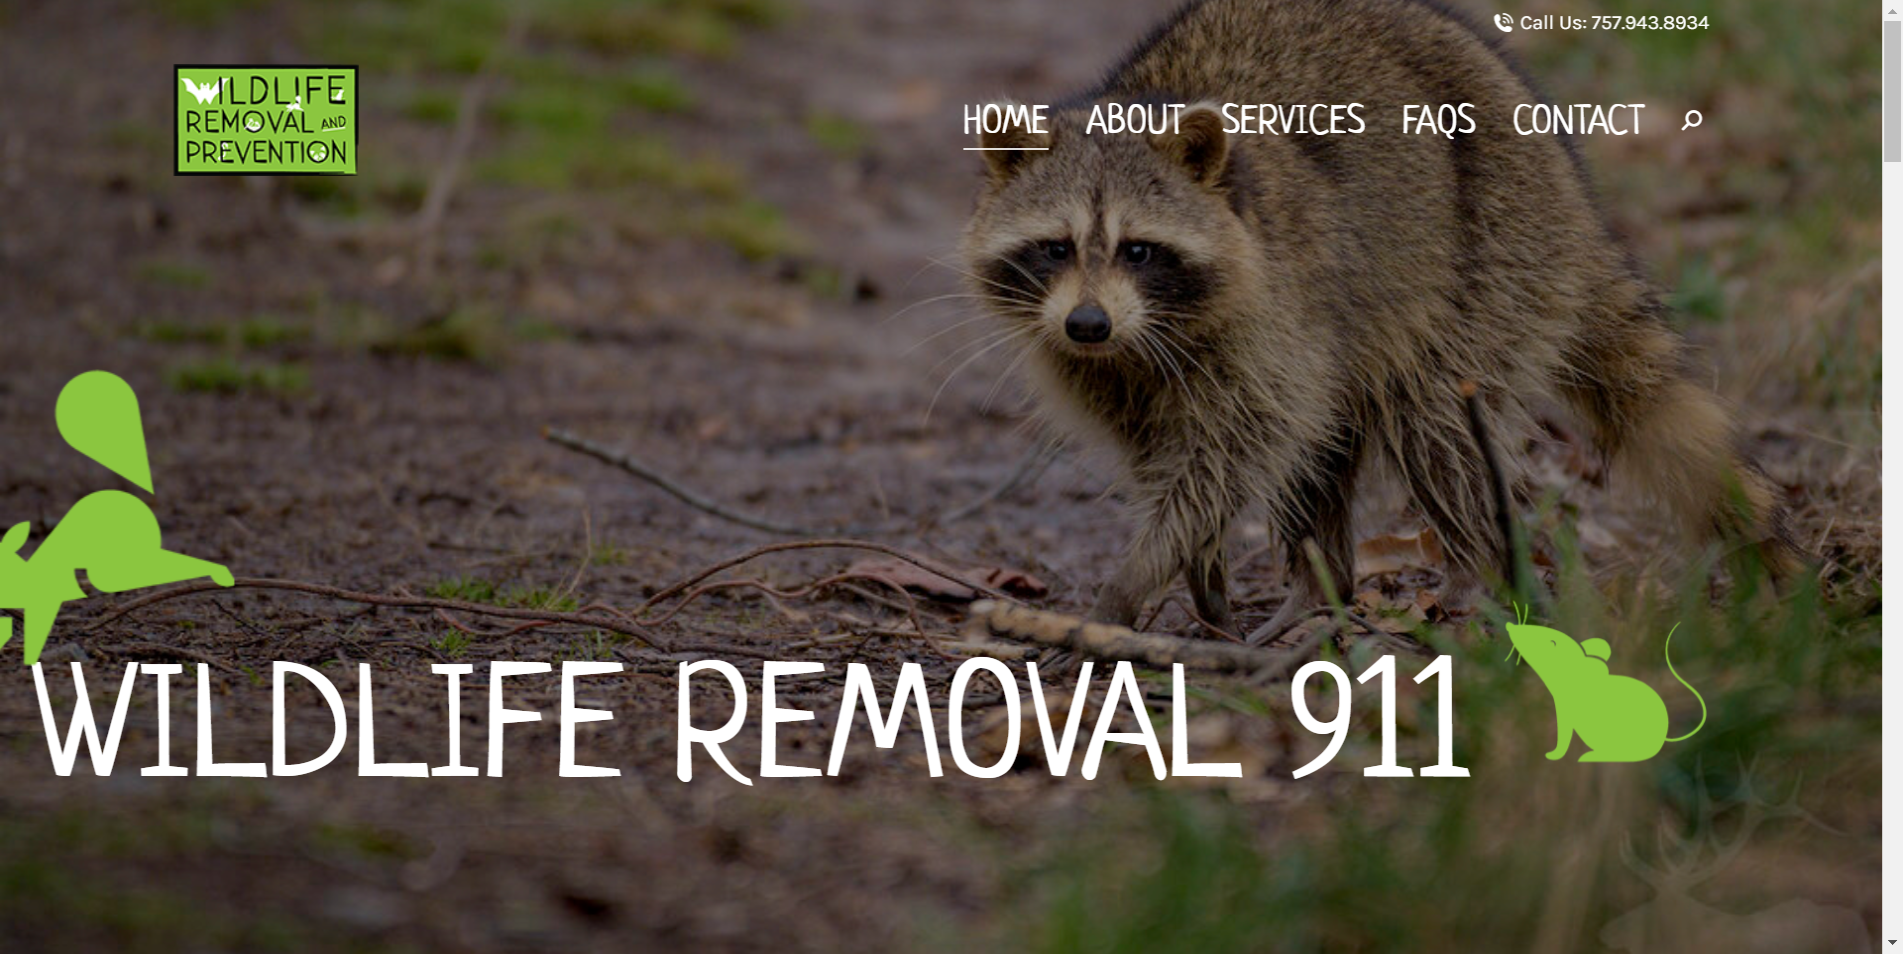 Wildlife Removal 911 - Surf Your Name Website - Animal Removal